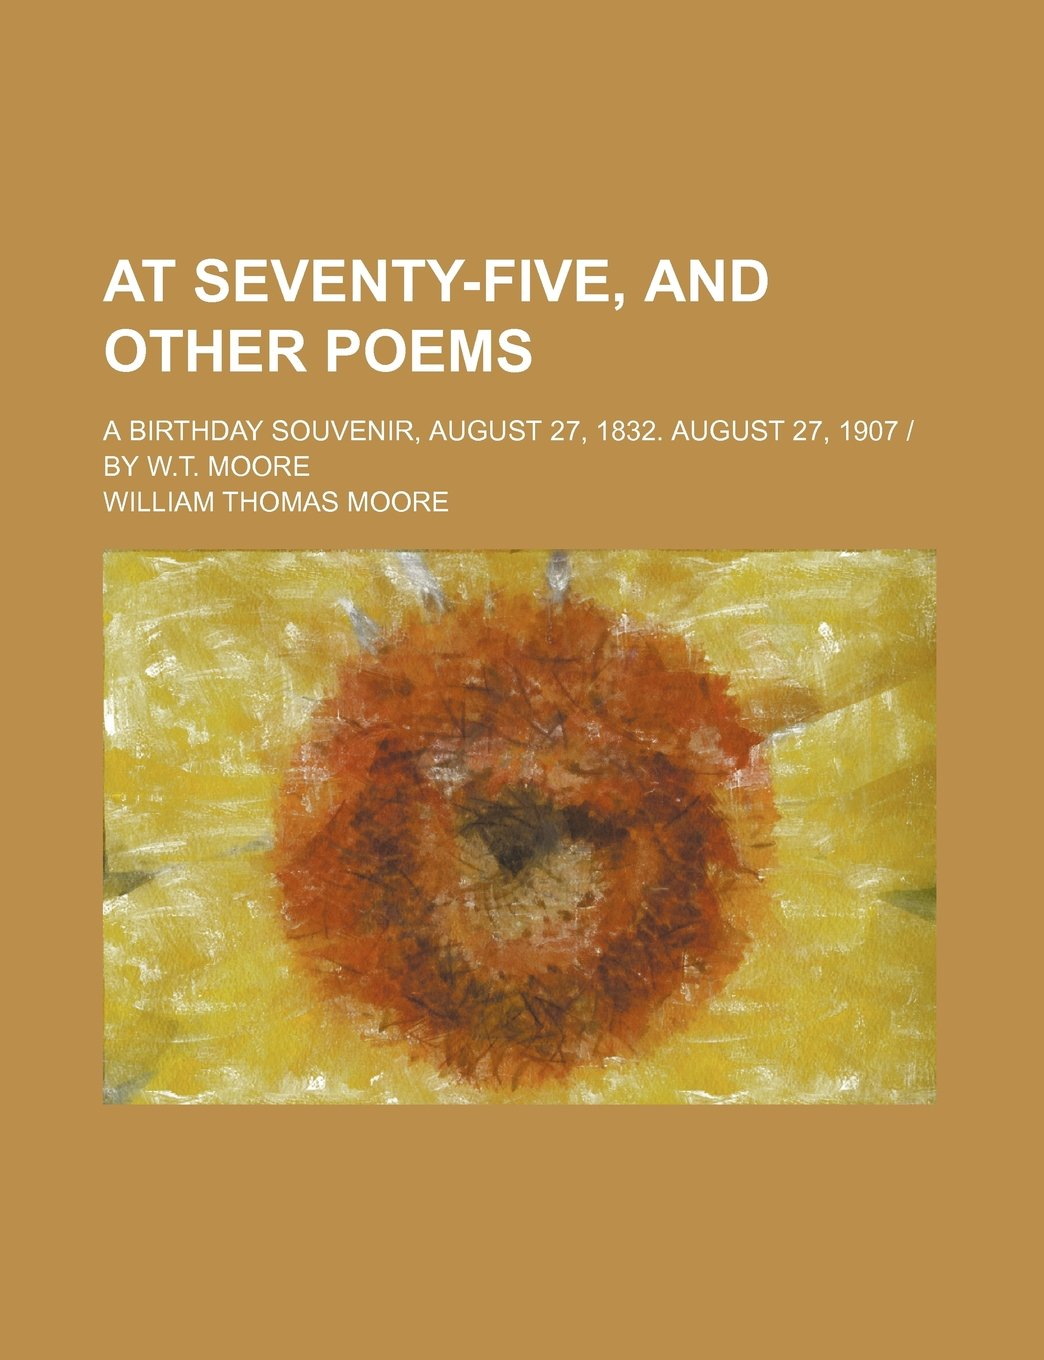 Download At seventy-five, and other poems; a birthday souvenir, August 27, 1832. August 27, 1907  by W.T. Moore ebook